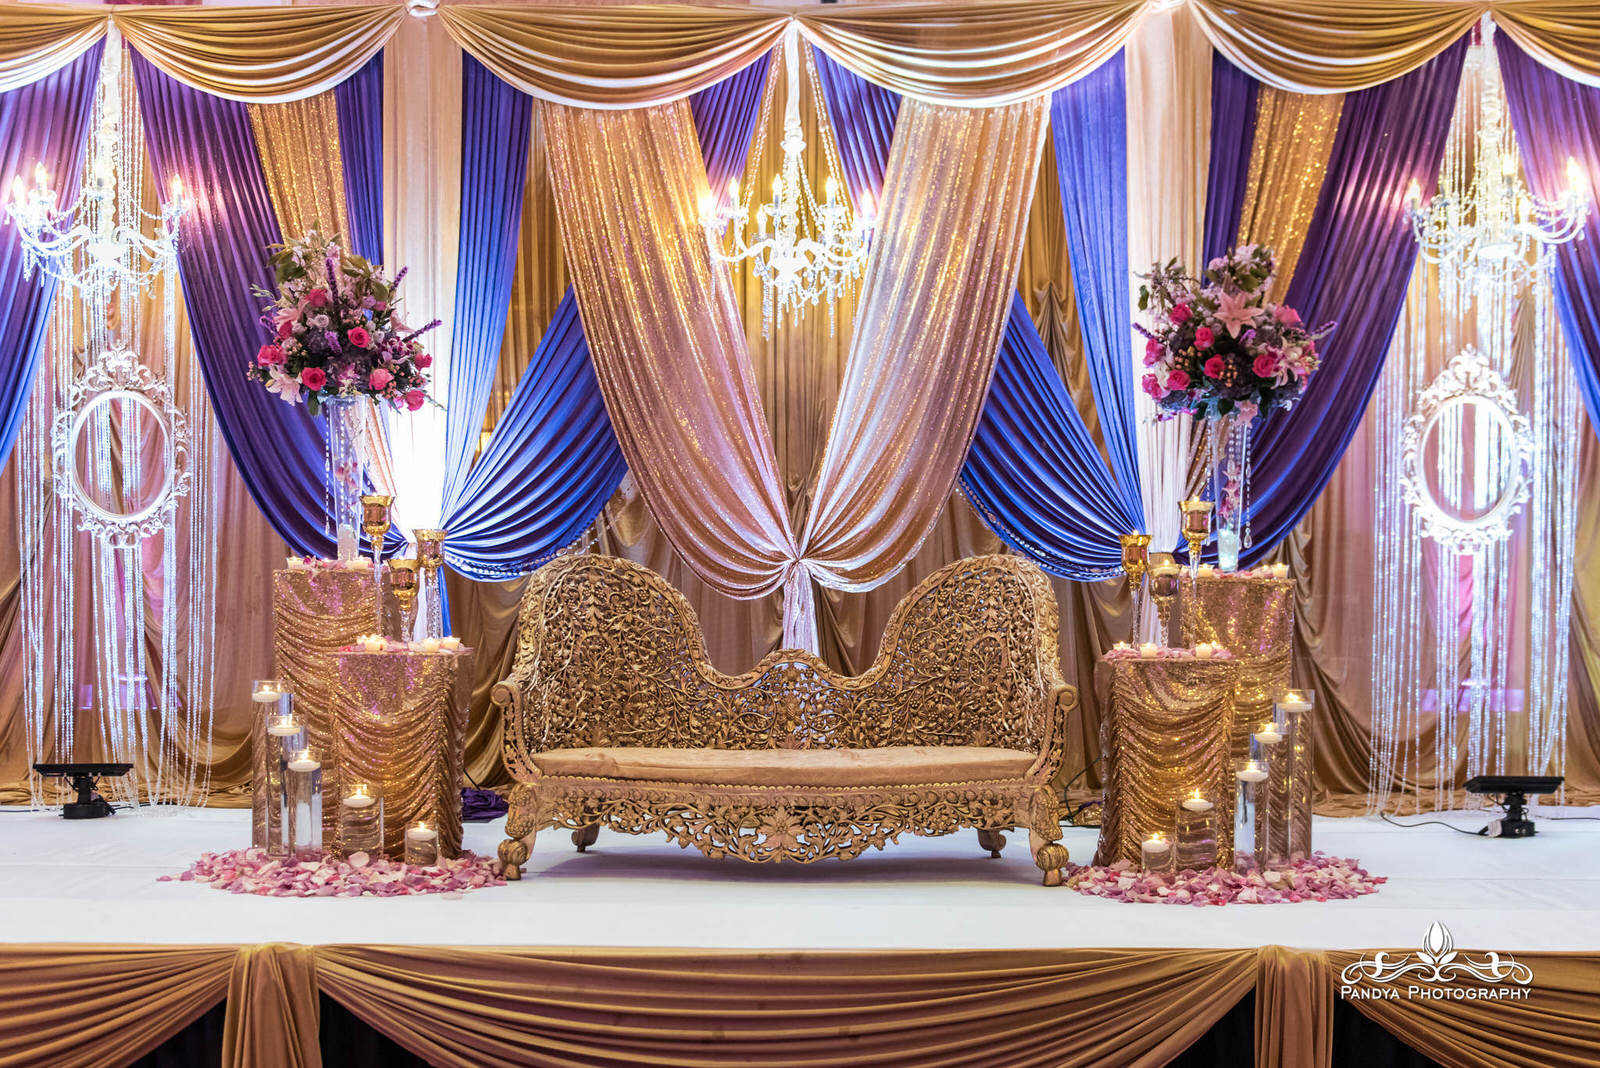 aekta and amit married at the merion in new jersey pandya photography nj indian wedding. Black Bedroom Furniture Sets. Home Design Ideas